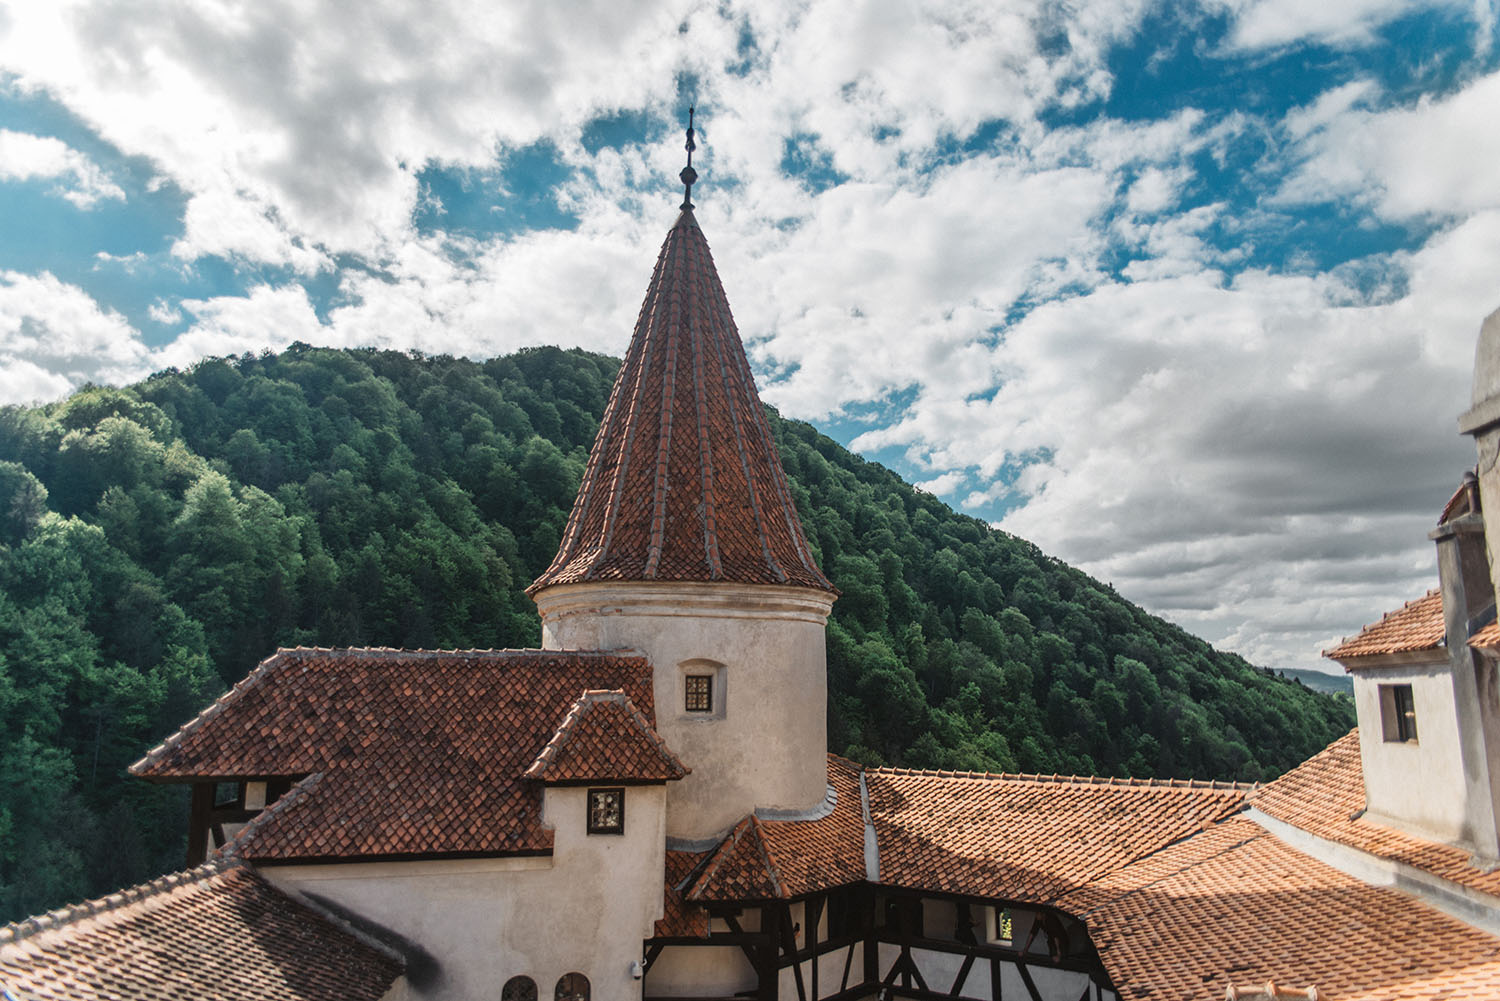 From Bucharest to Dracula's Castle in Transylvania (Bran Castle)